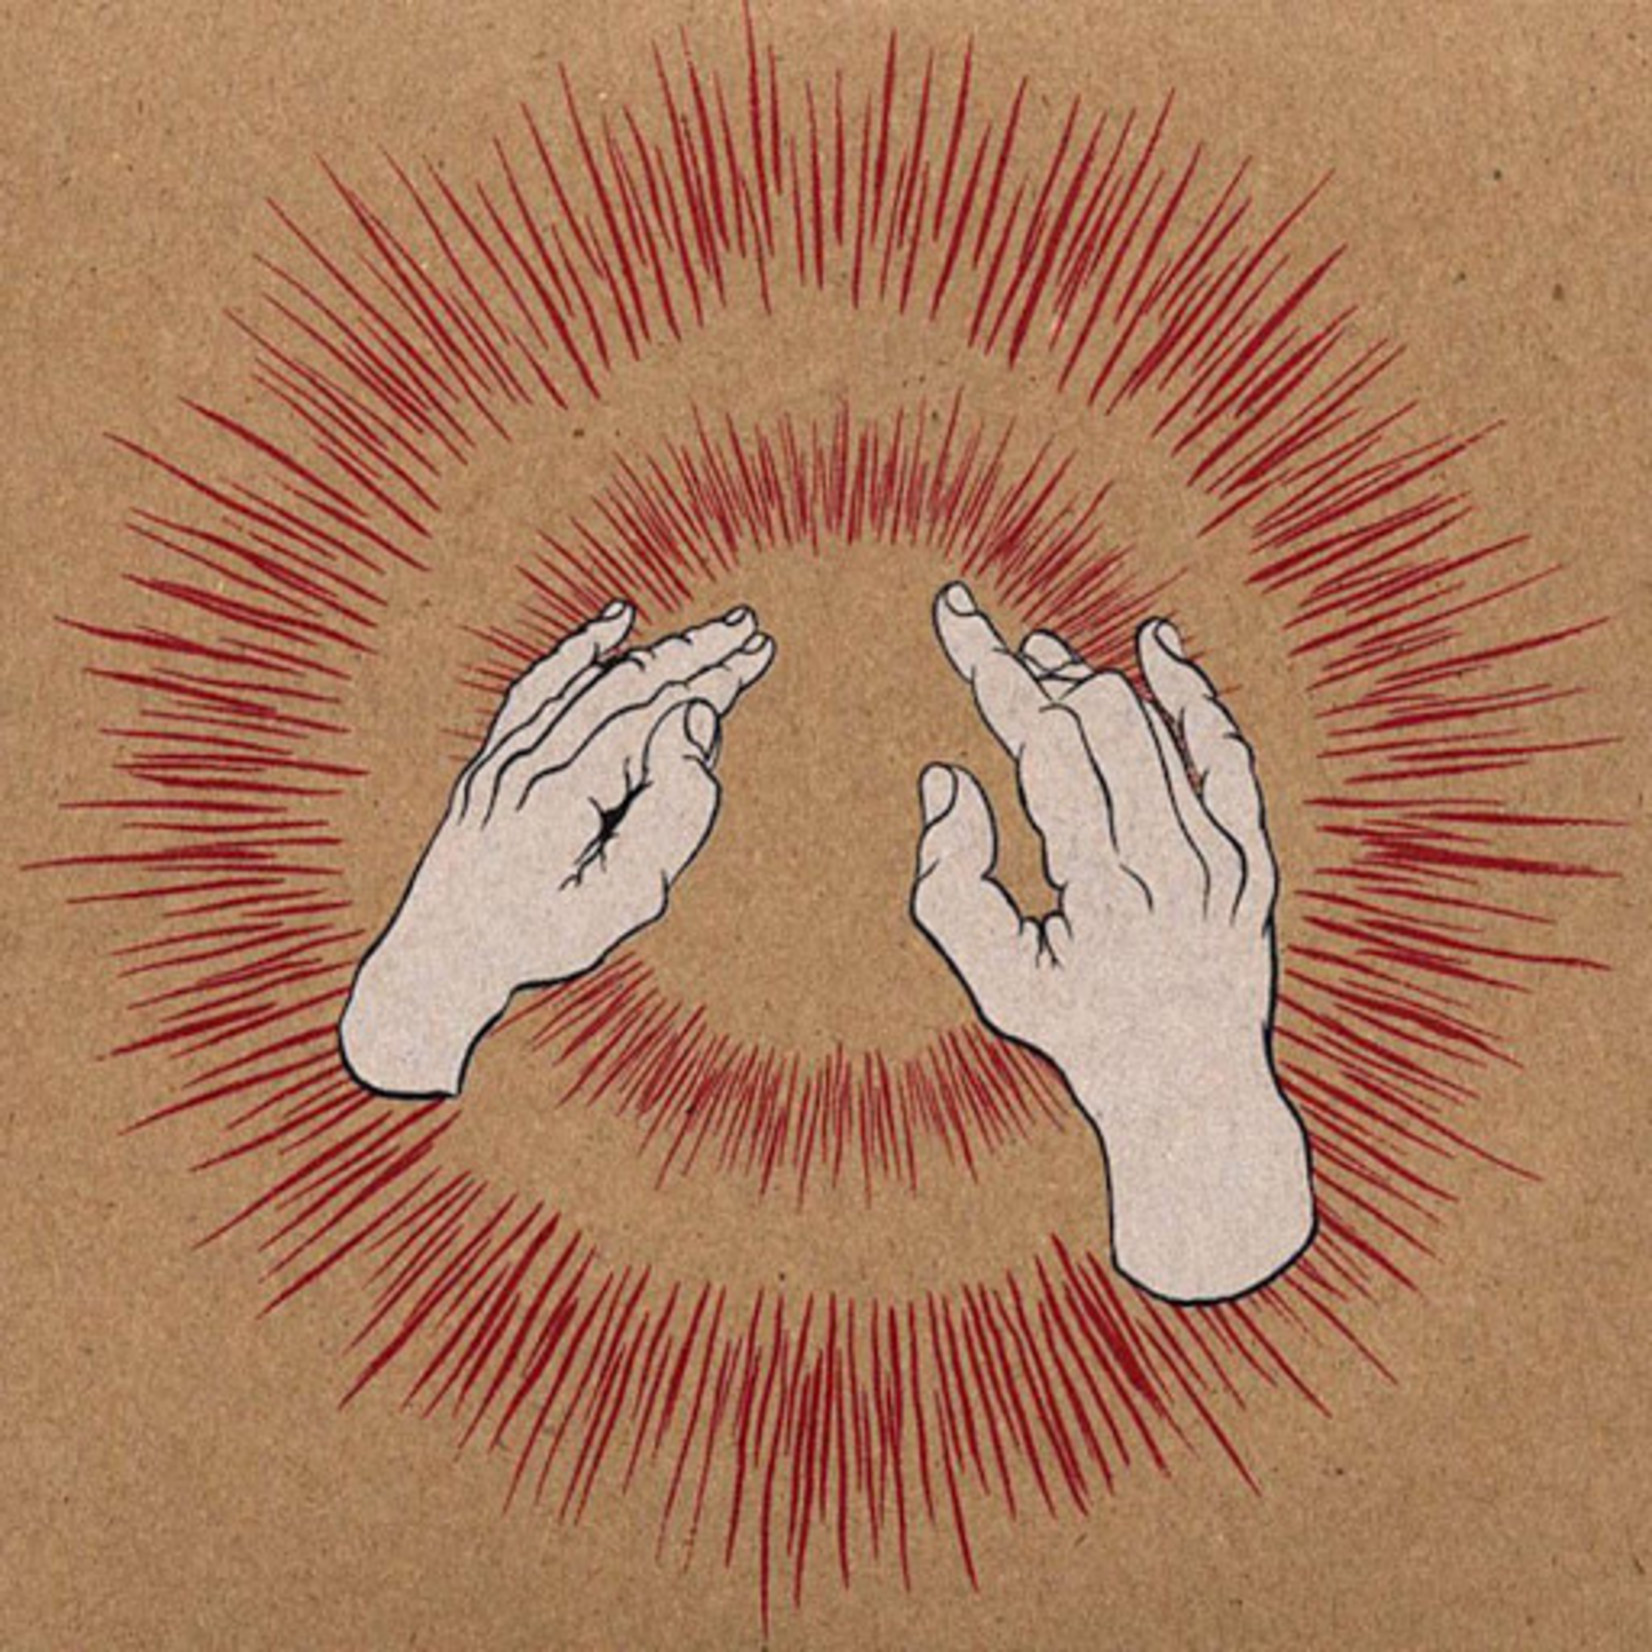 [New] Godspeed You! Black Emperor: Lift Your Skinny Fists Like Antennas To Heaven (2LP)